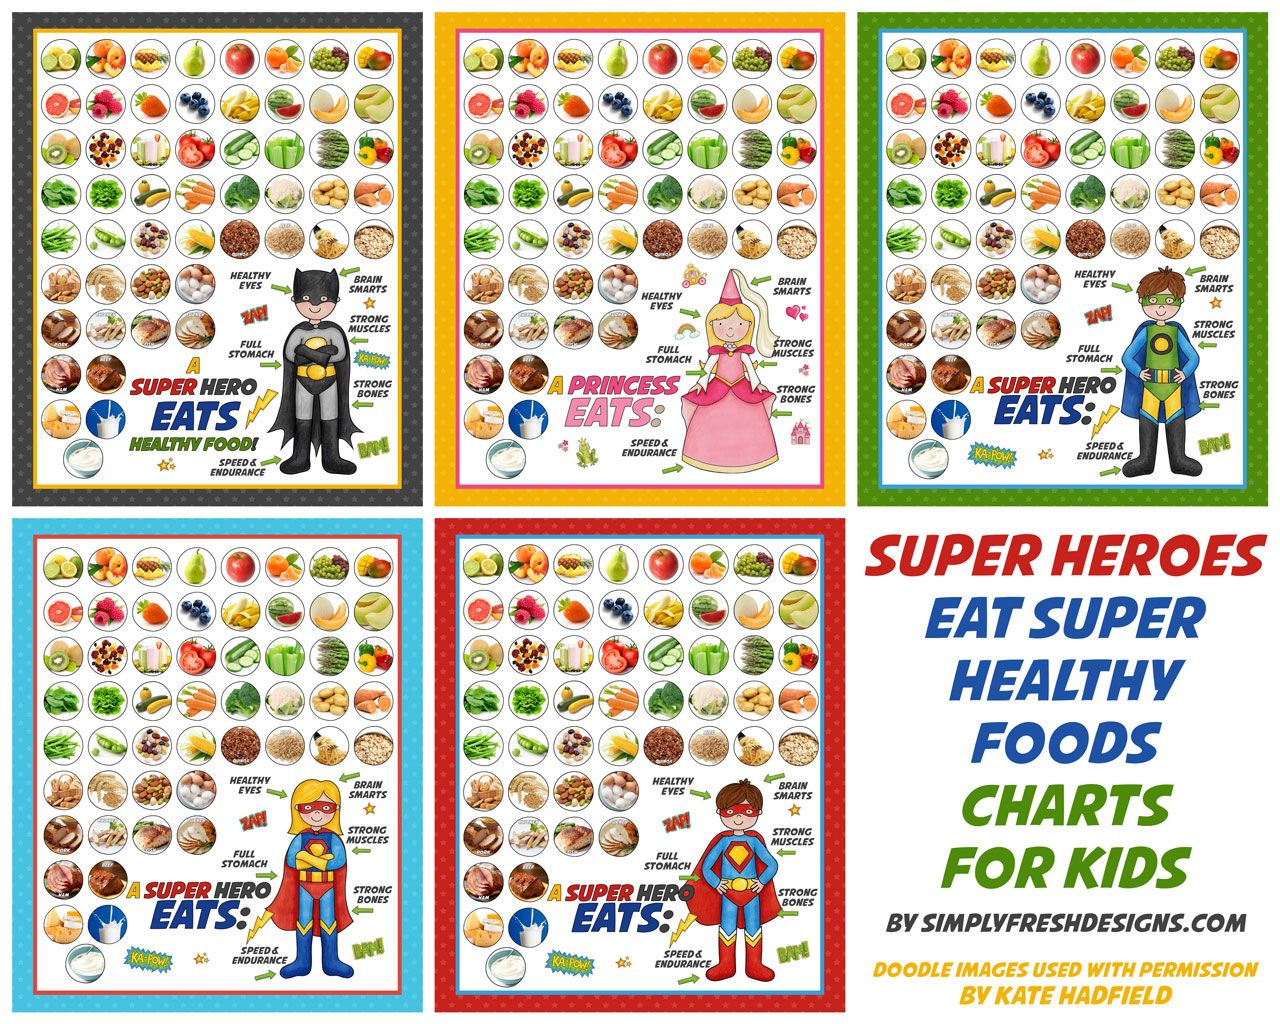 Healthy Eating Charts For Kids Only At Simplyfreshdesigns